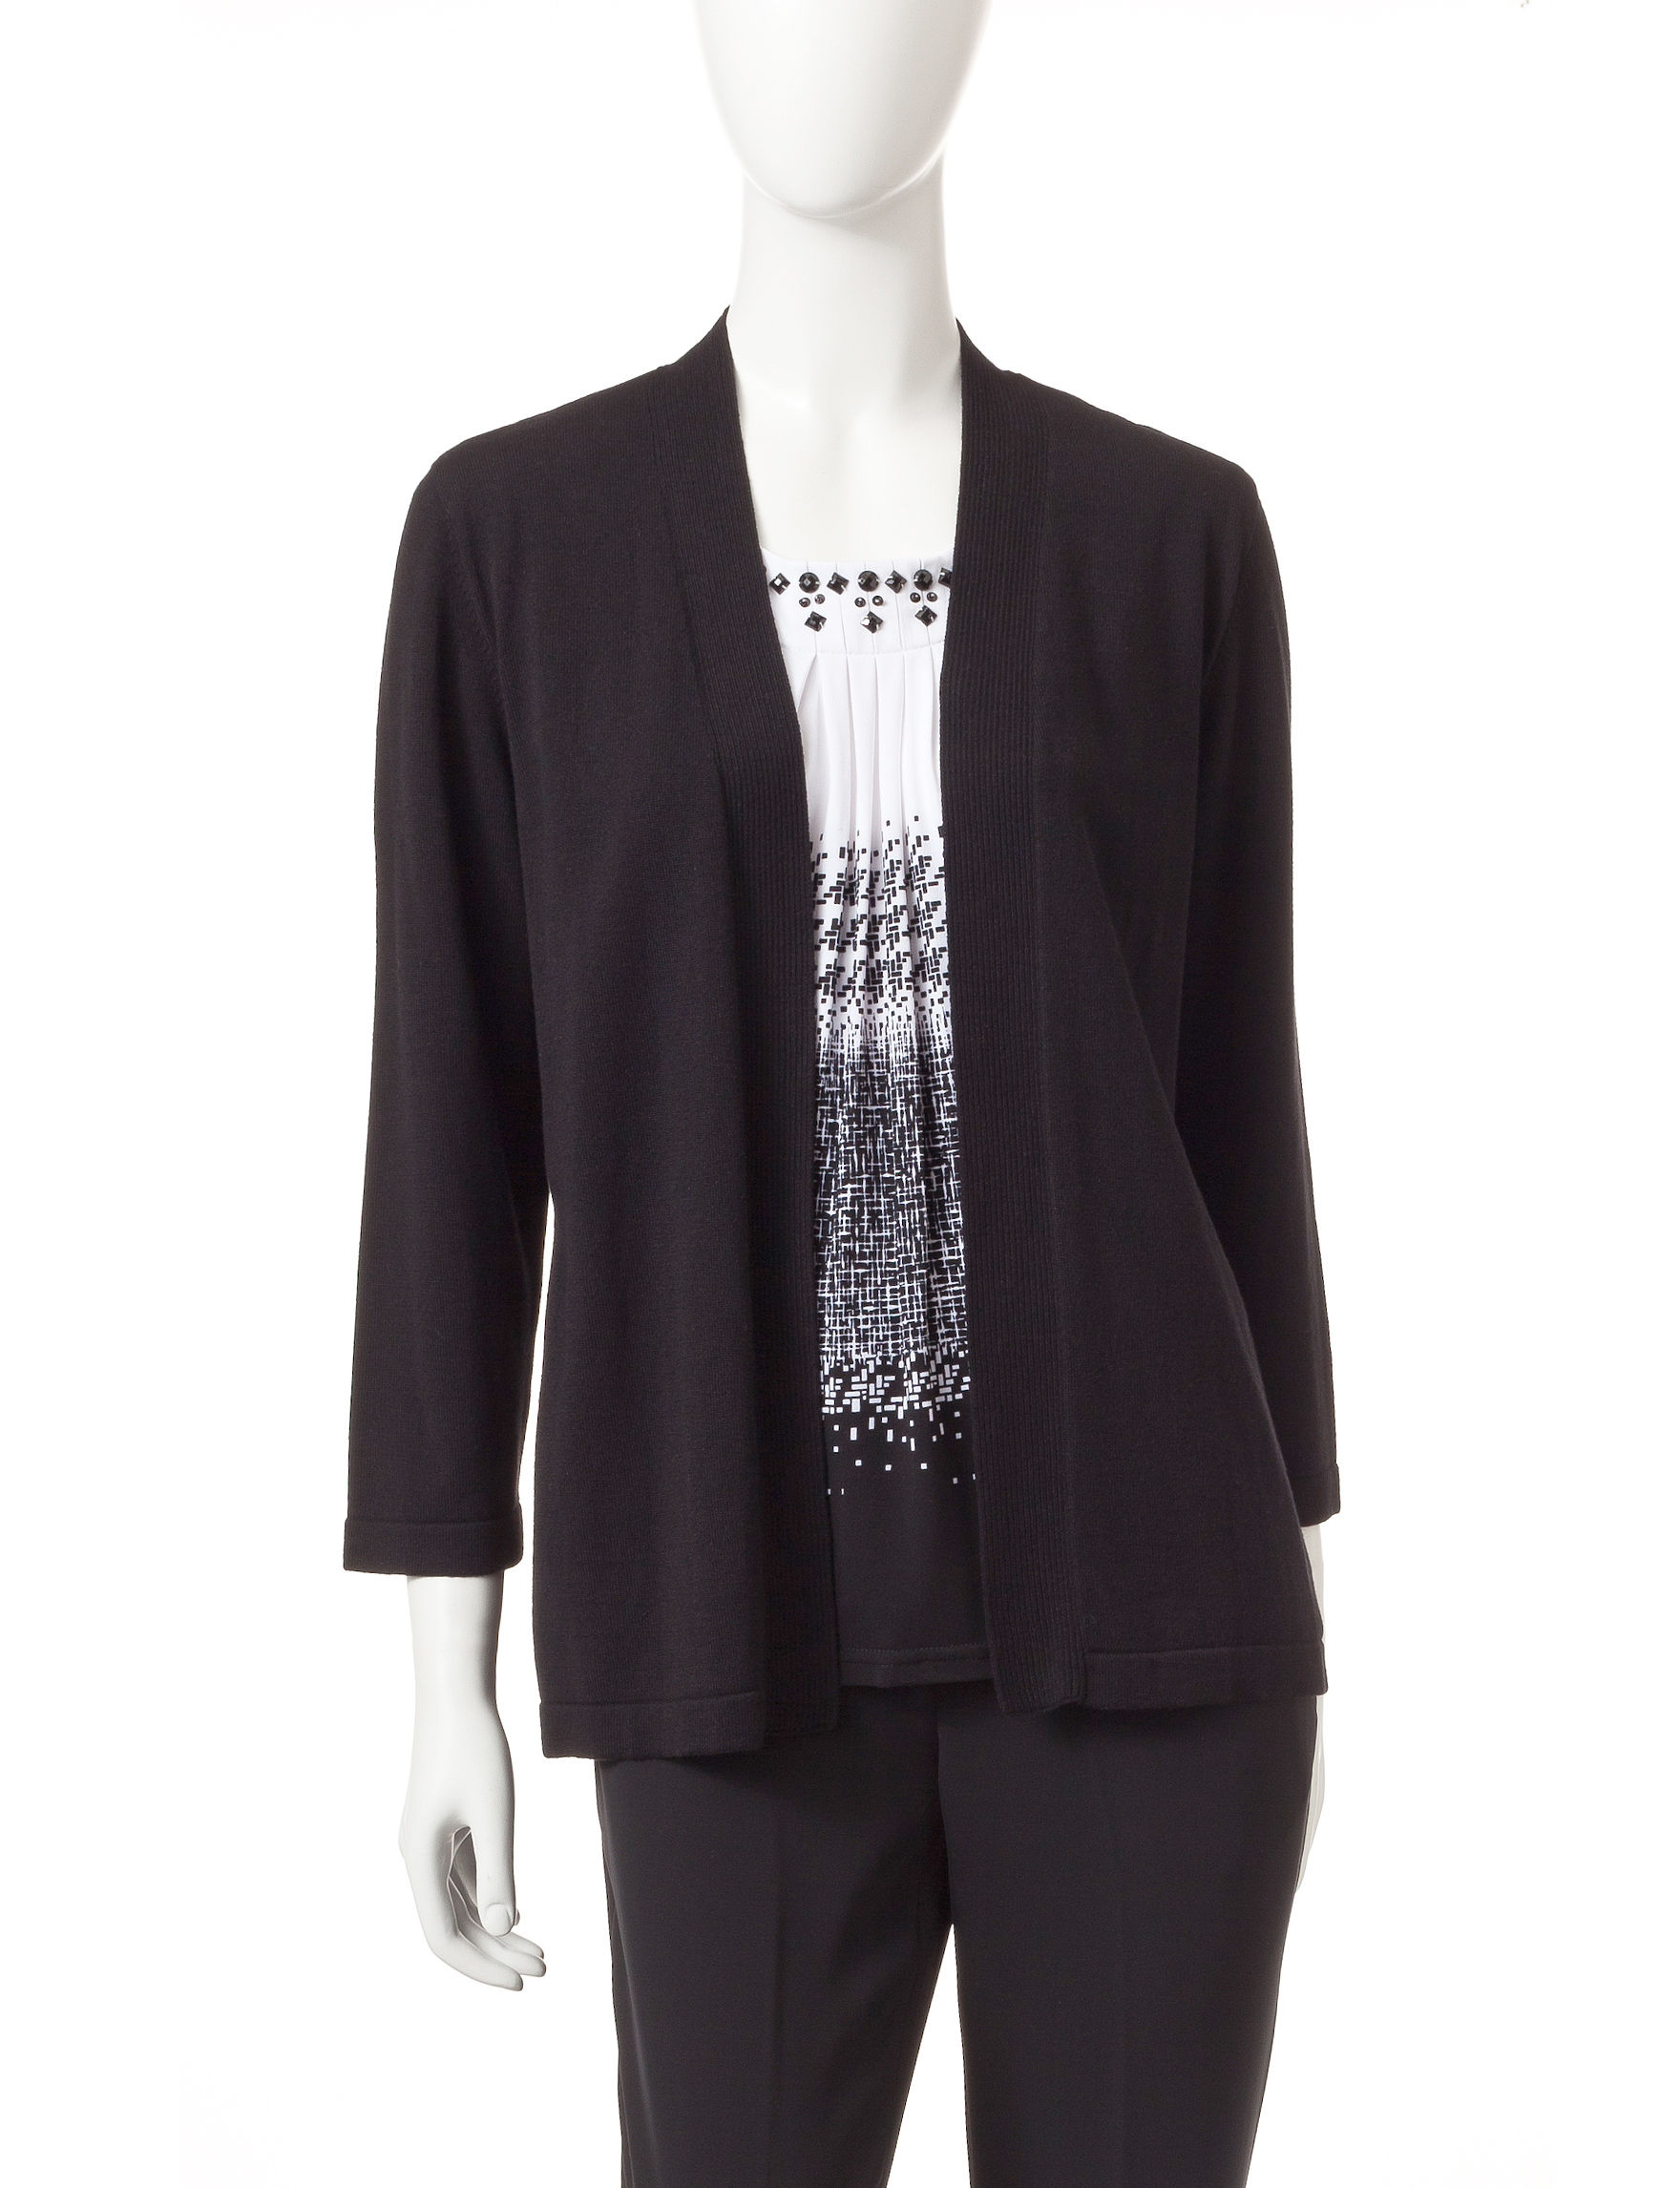 Alfred Dunner Black Cardigans Sweaters